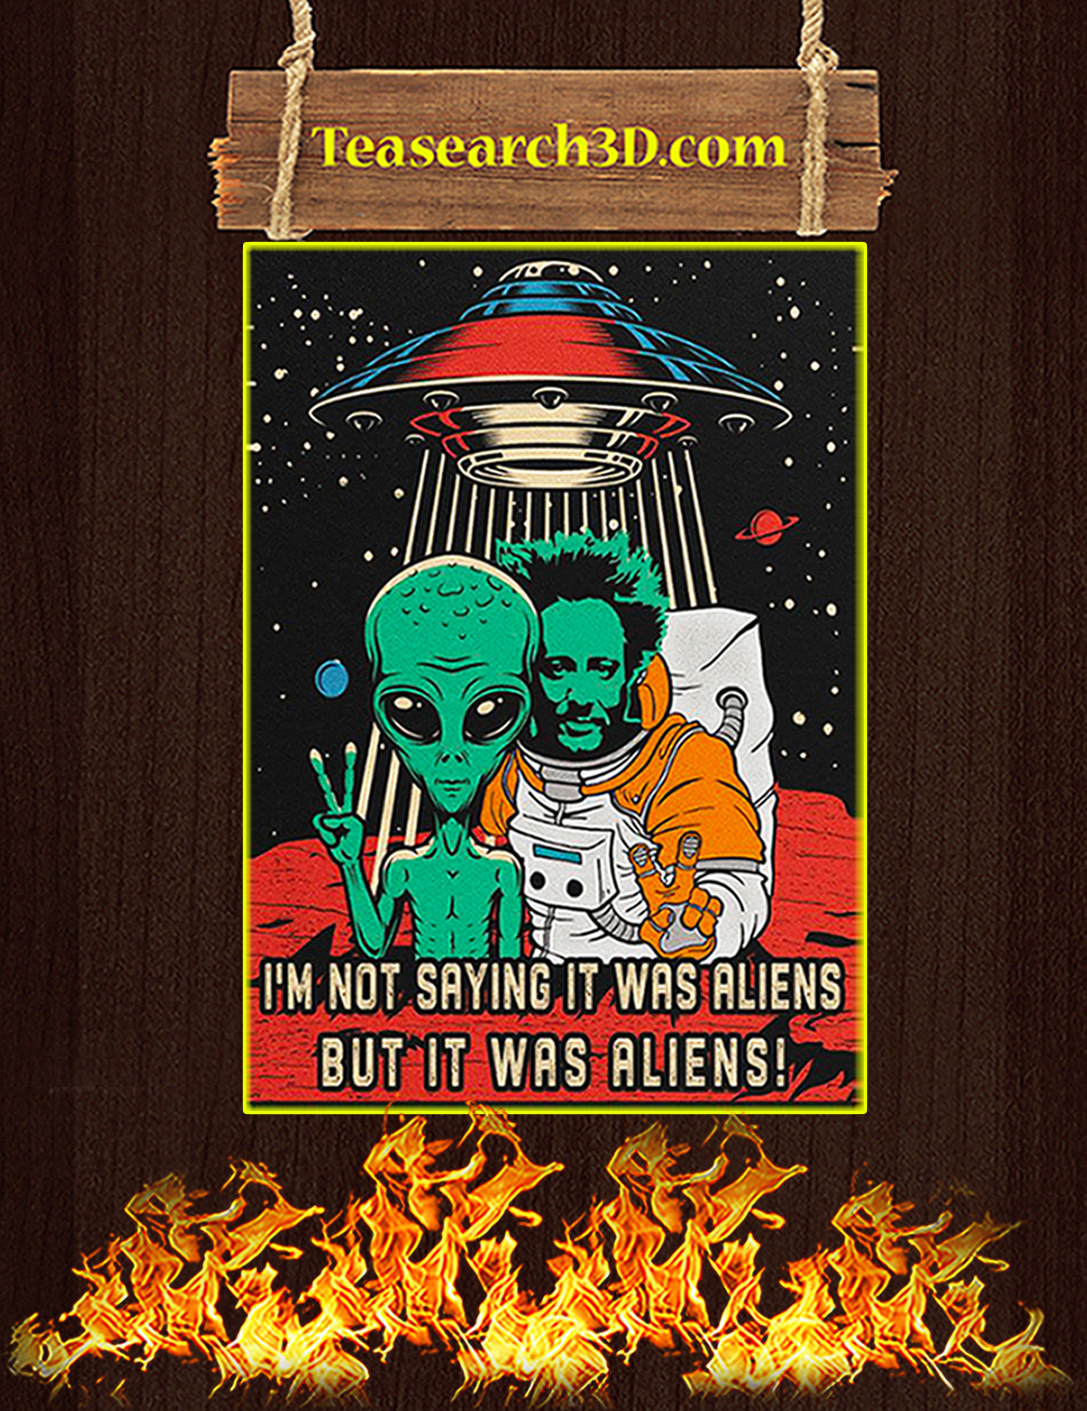 I'm not saying it was aliens but it was aliens canvas prints medium